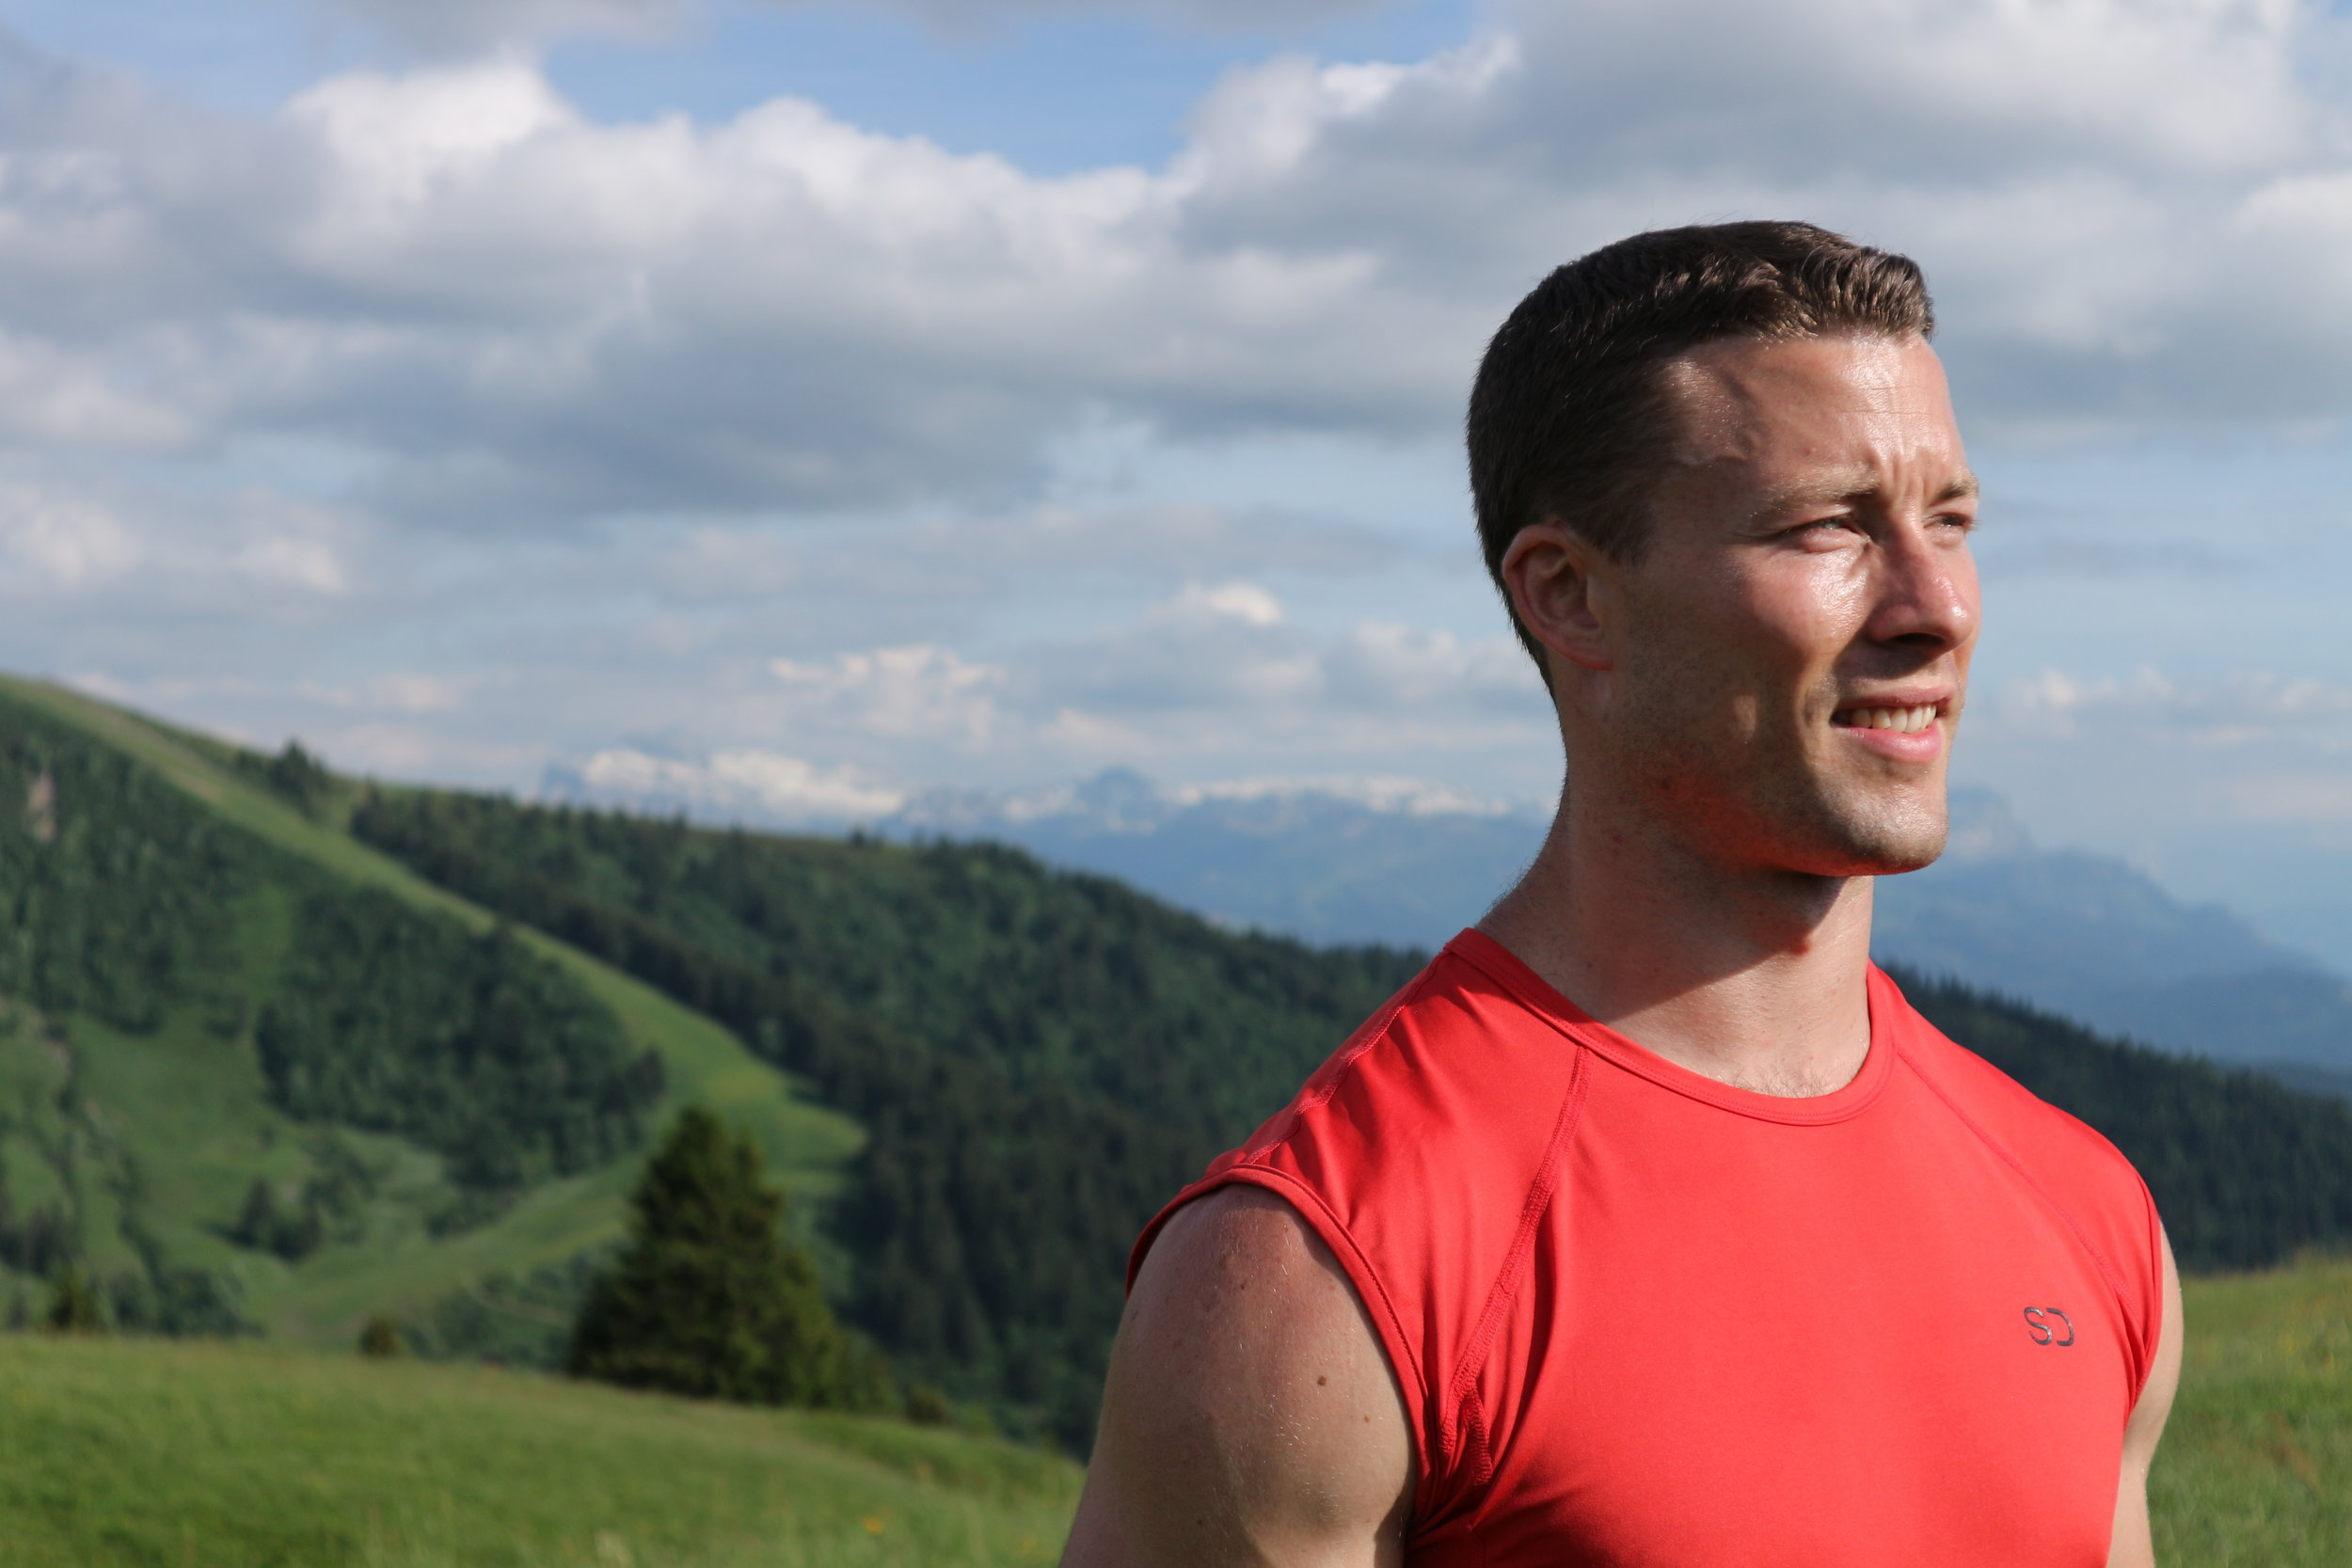 Read more about founder of Wild Training, James Griffiths